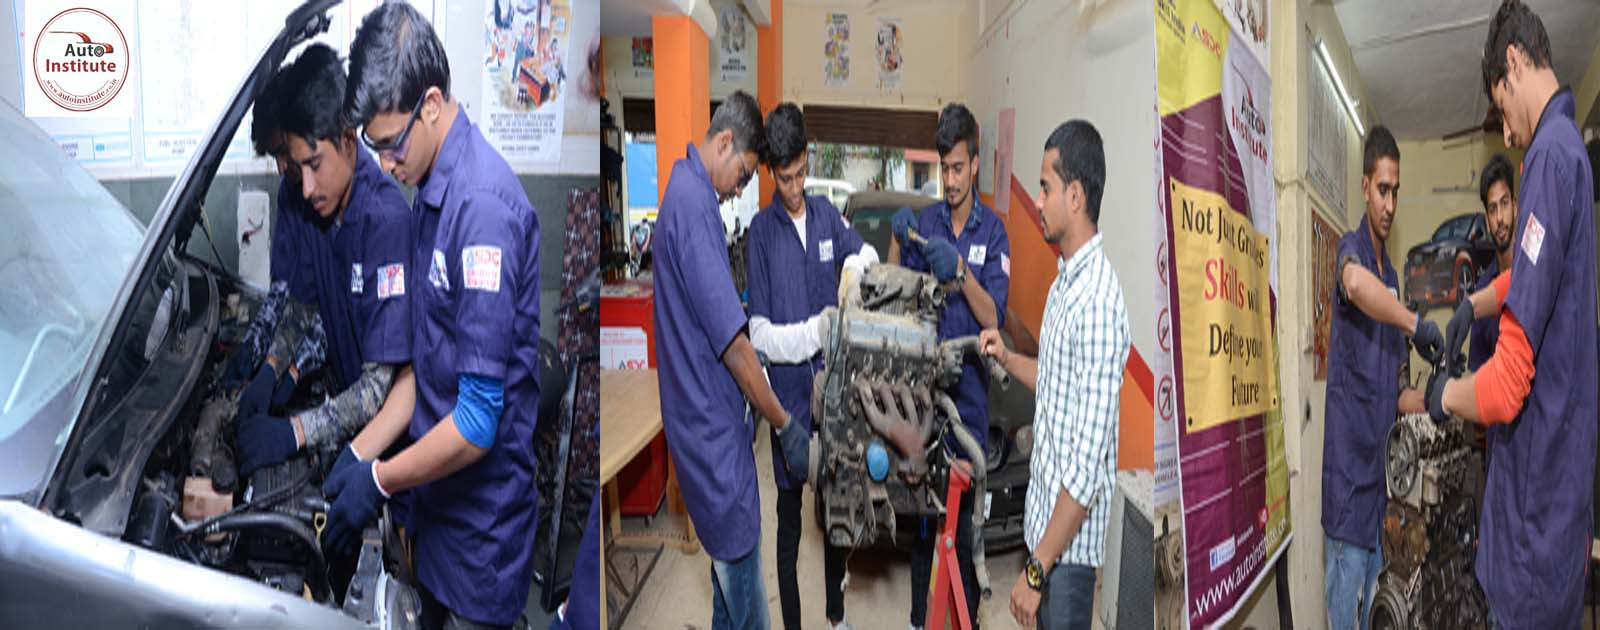 Auto Institute students enjoying Hands on practical on Multi Car & Bike.